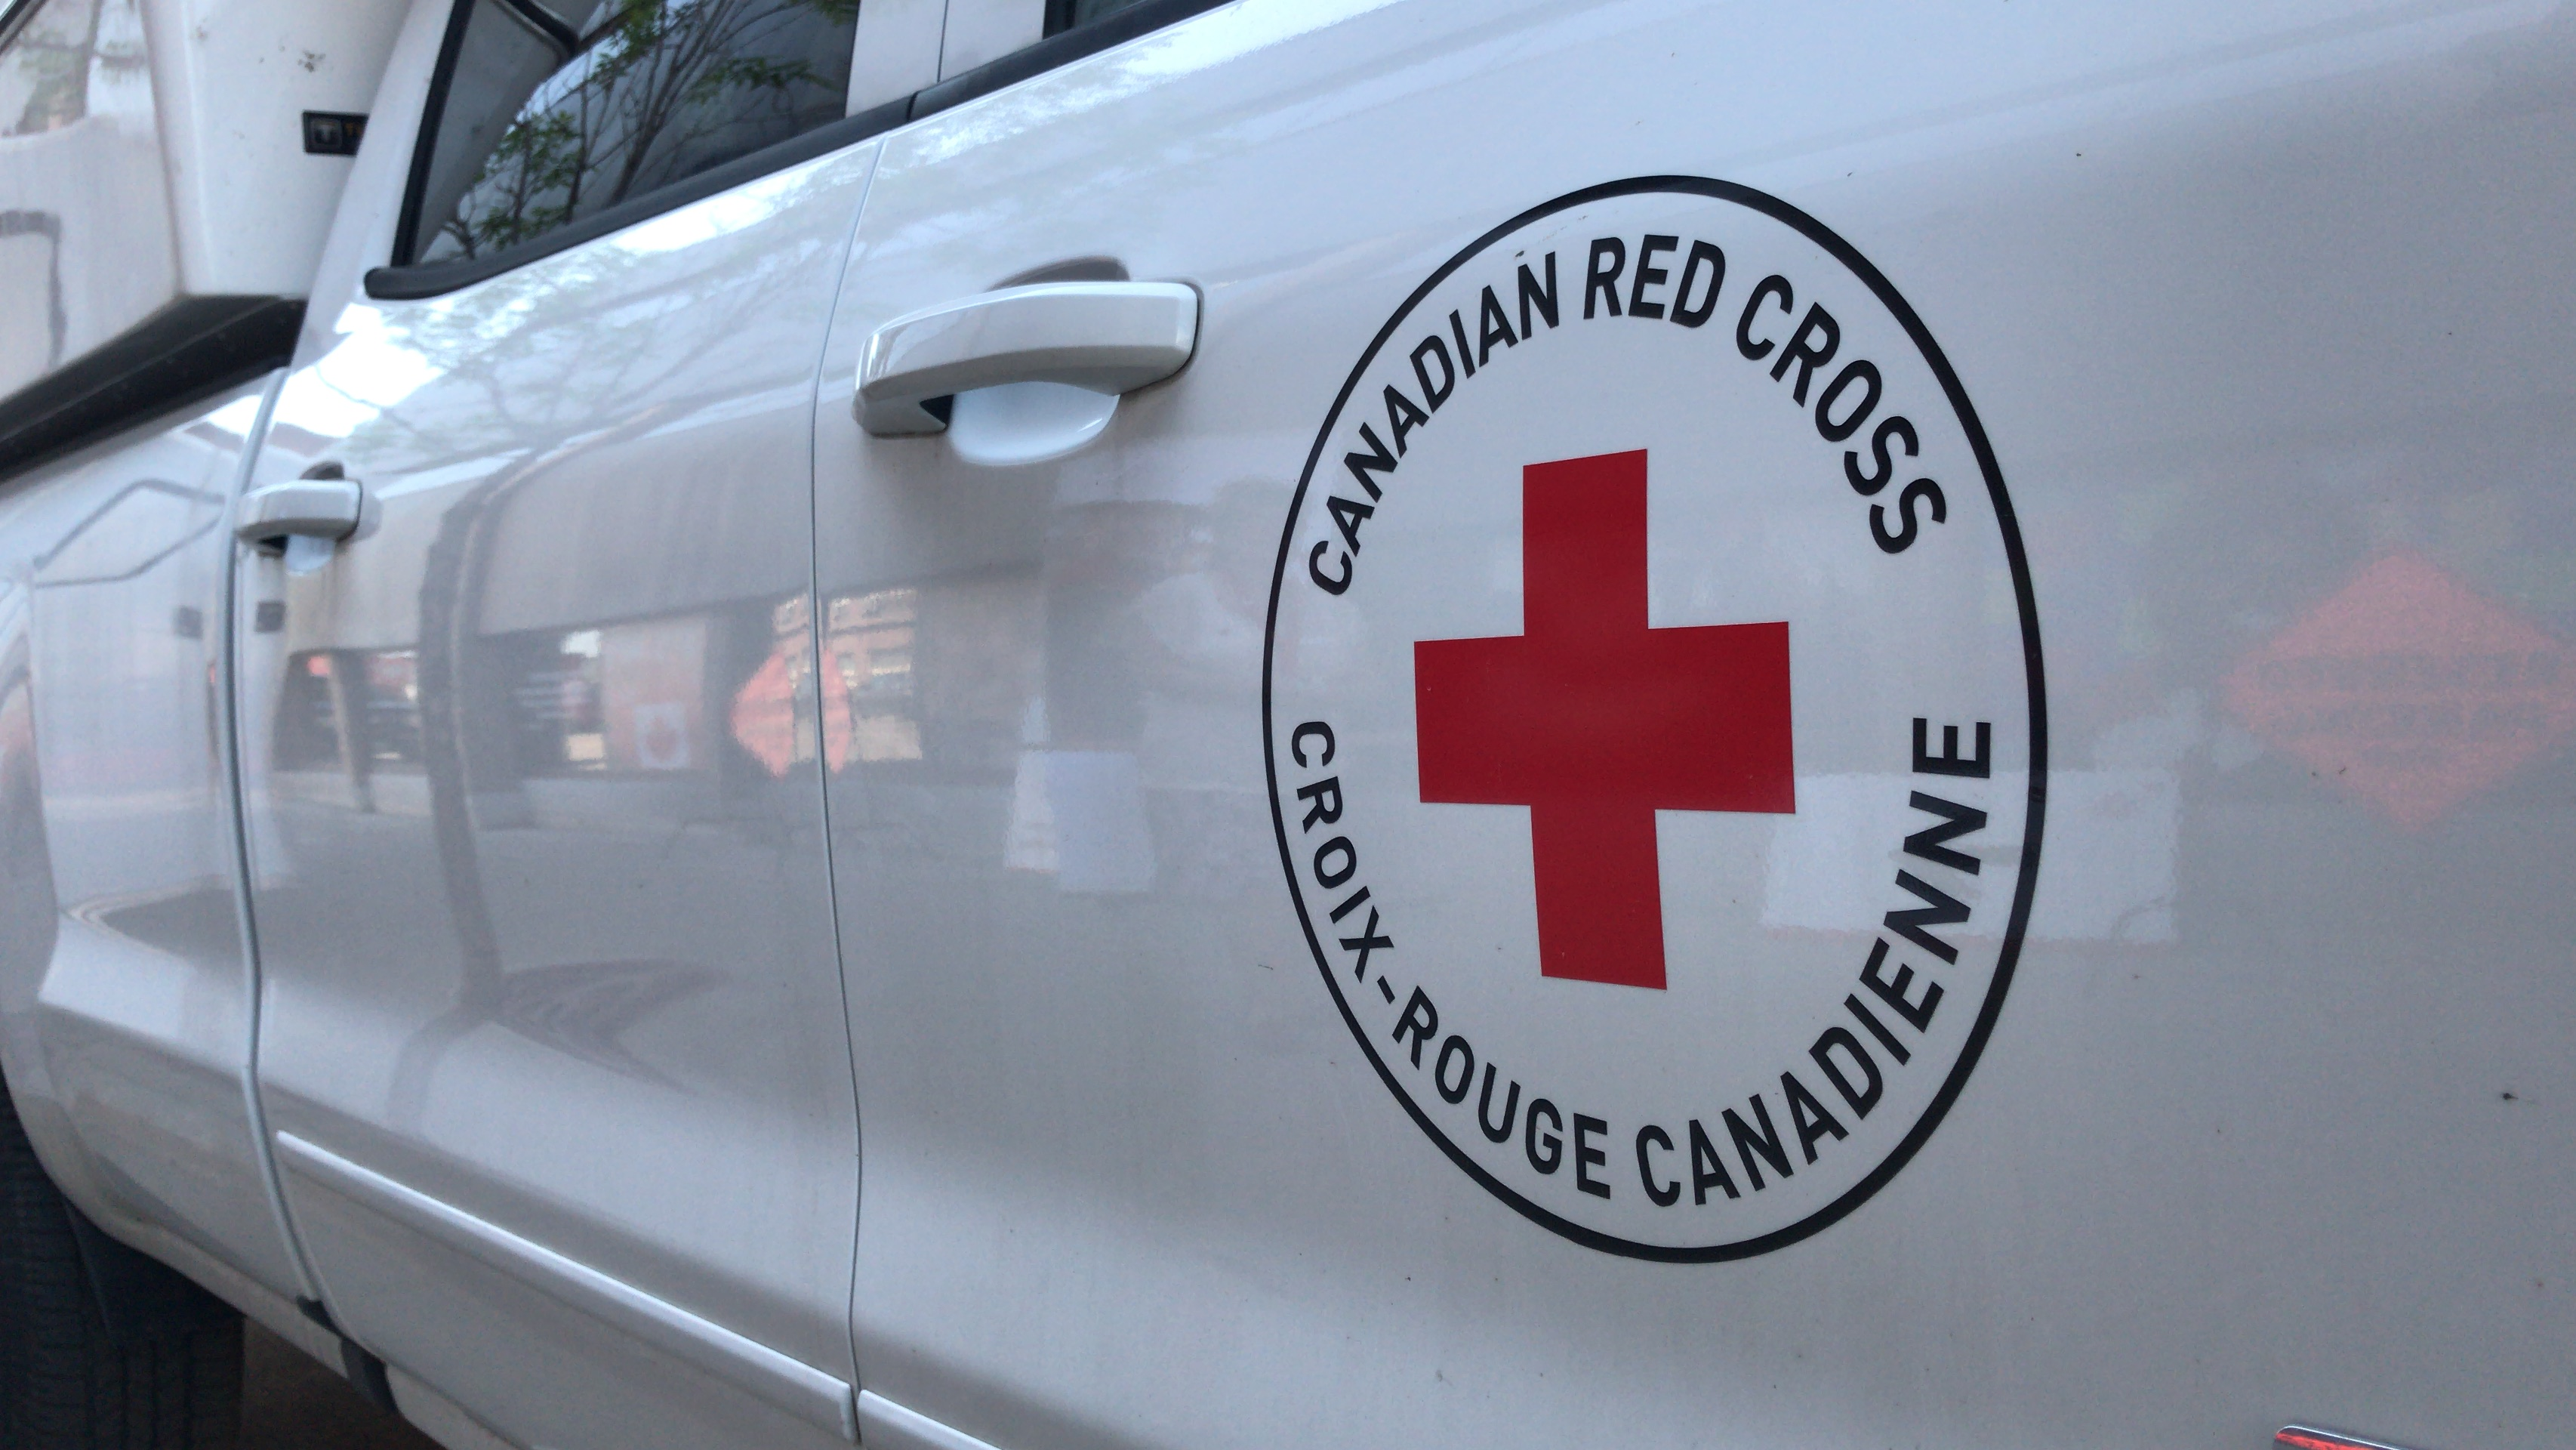 Canadian Red Cross still providing assistance to those